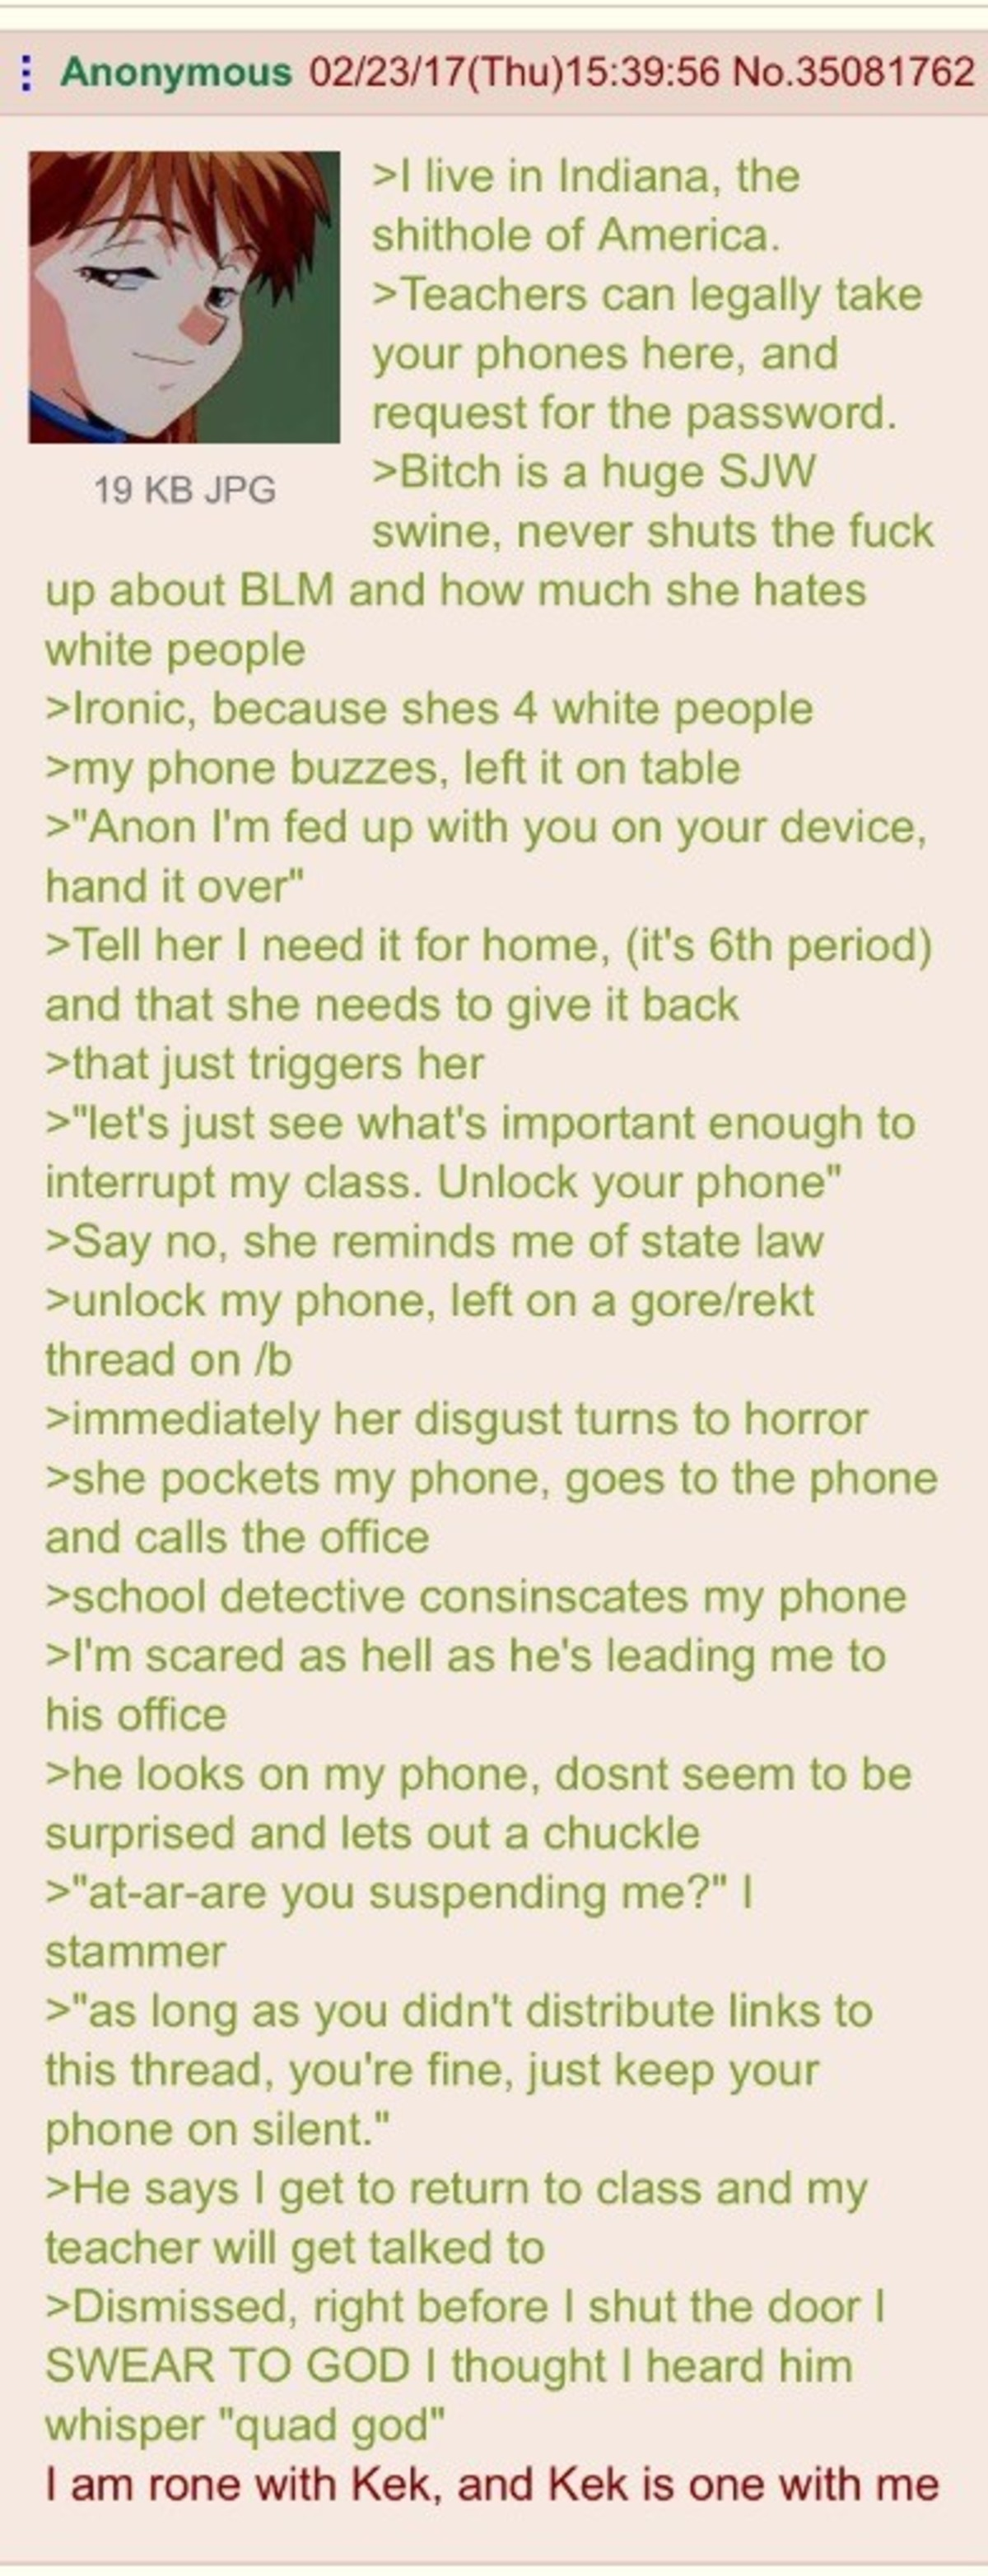 Anon gets caught for gore. join list: Chanoholic (310 subs)Mention History.. Hoosier here, there is no such law about having to provide a password to your phone. Just another lame made up greentext.